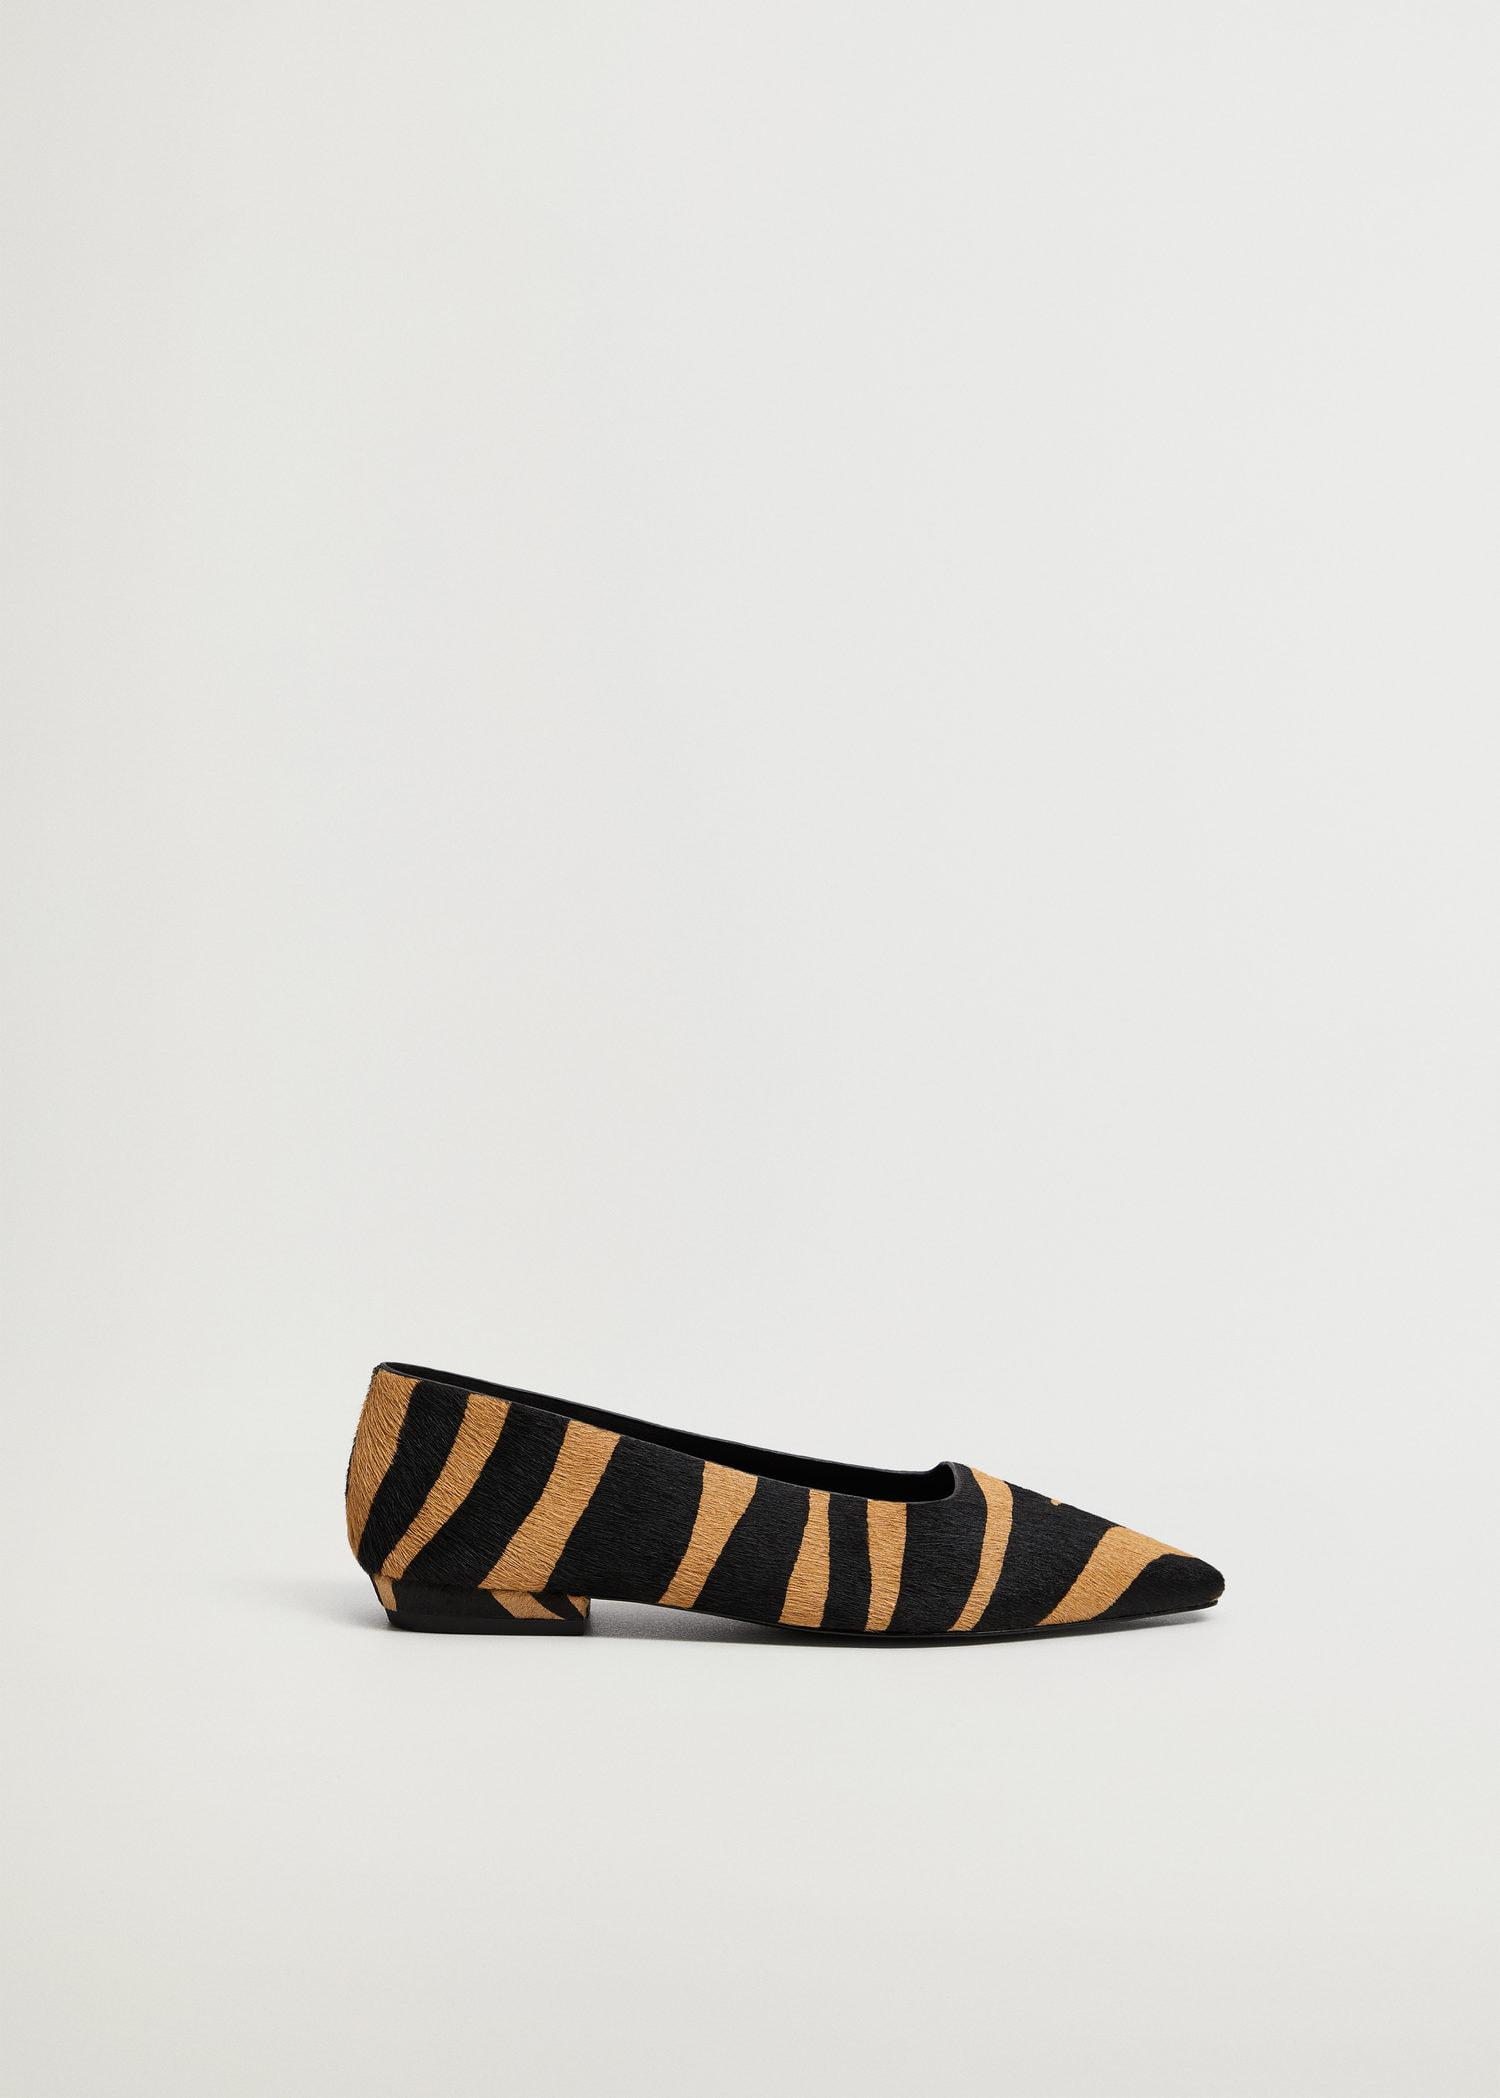 Animal-print leather shoes